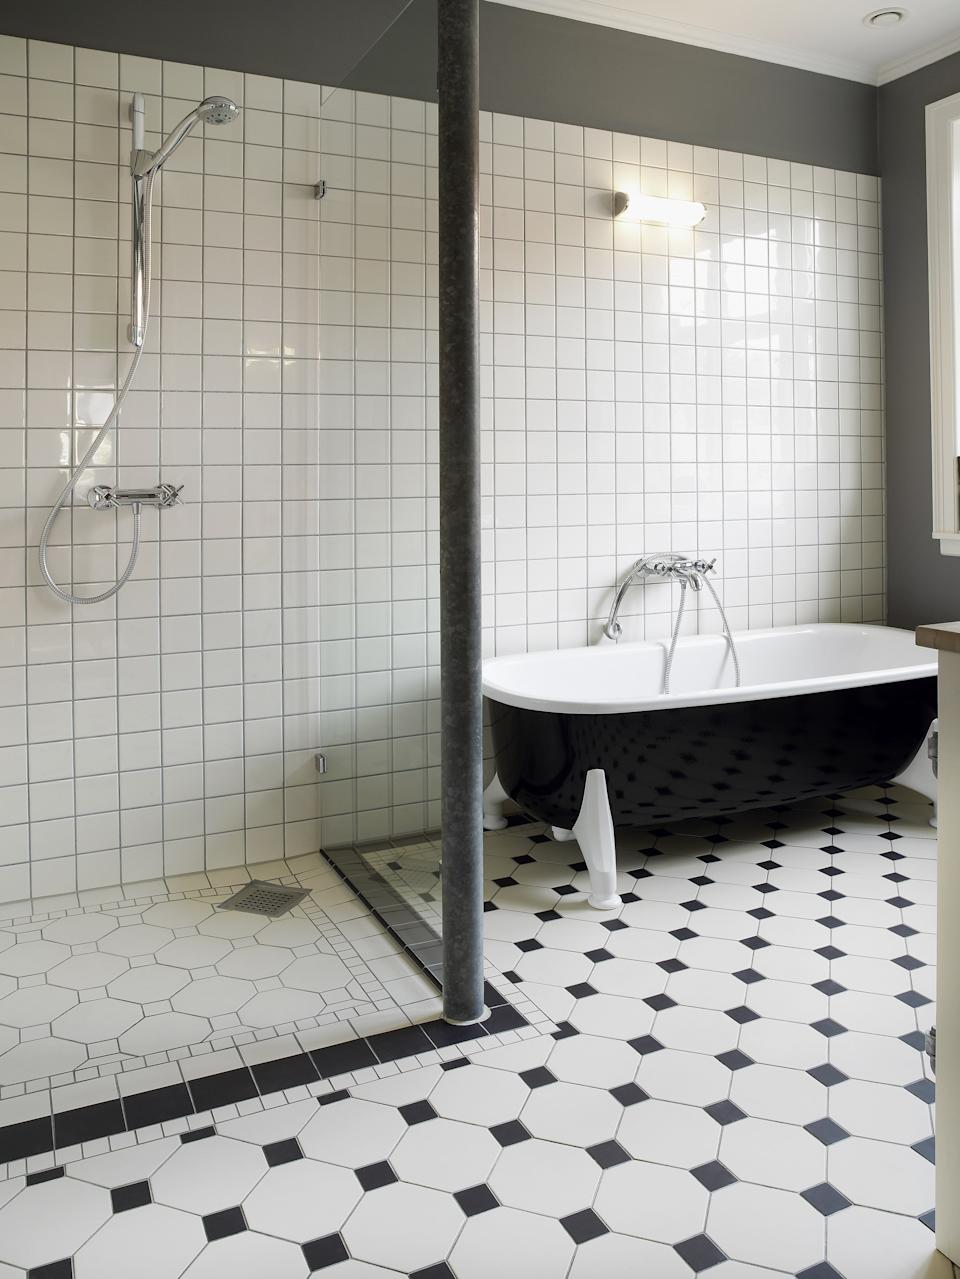 Totally renovated bathroom with shower cabin and bathtub,light cream coloured tiles on floor and wall. Point of focus mainly on tiles in forground.